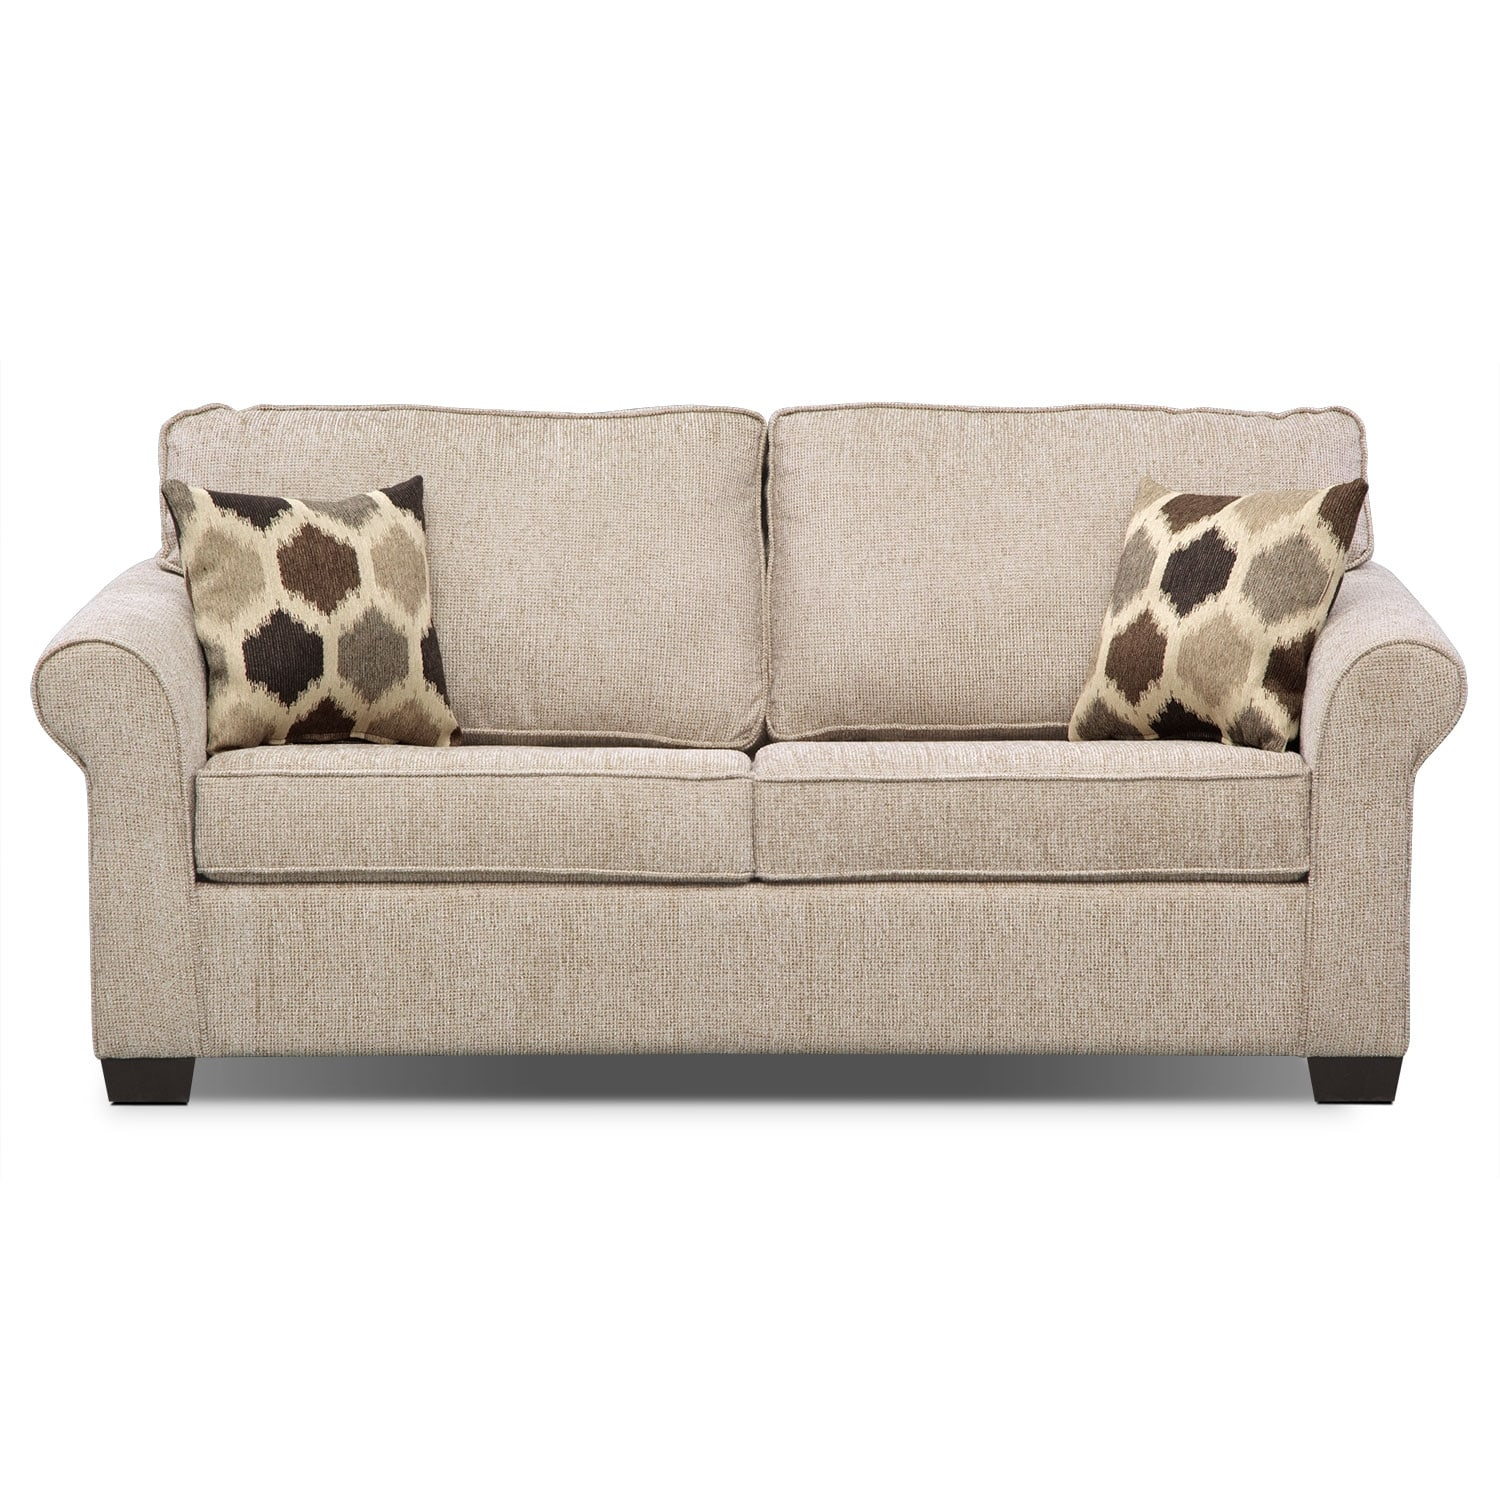 Fletcher Full Memory Foam Sleeper Sofa Beige American Signature Furniture